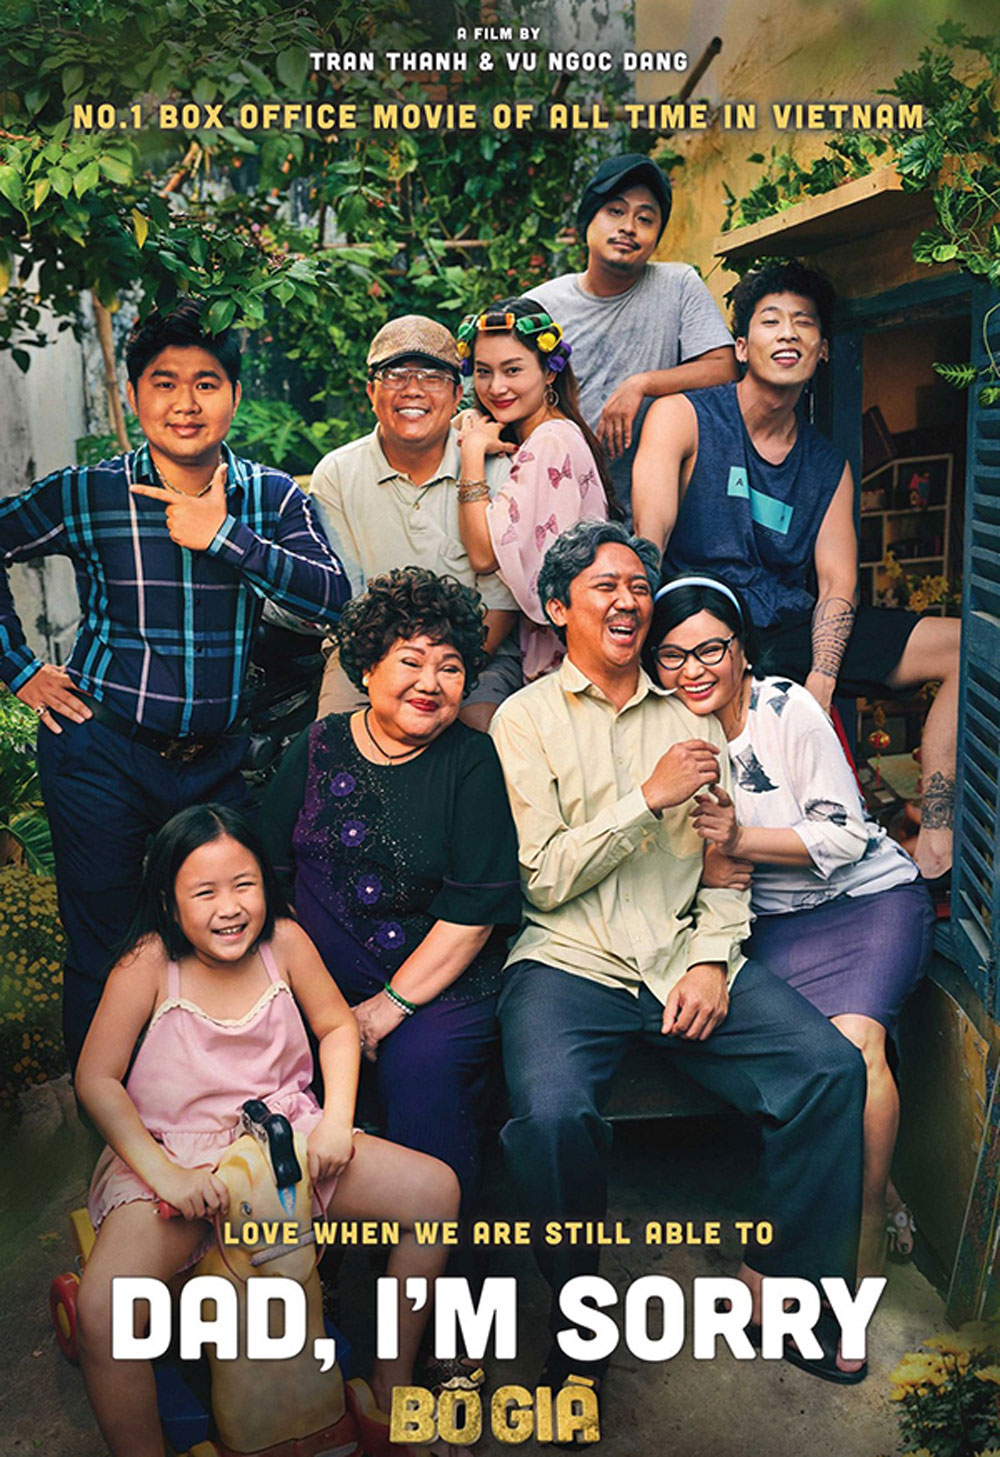 Vietnamese blockbuster, US box office, Bo Gia, Dad, I'm Sorry,  top 10 movies, hit web drama, highest-grossing movies